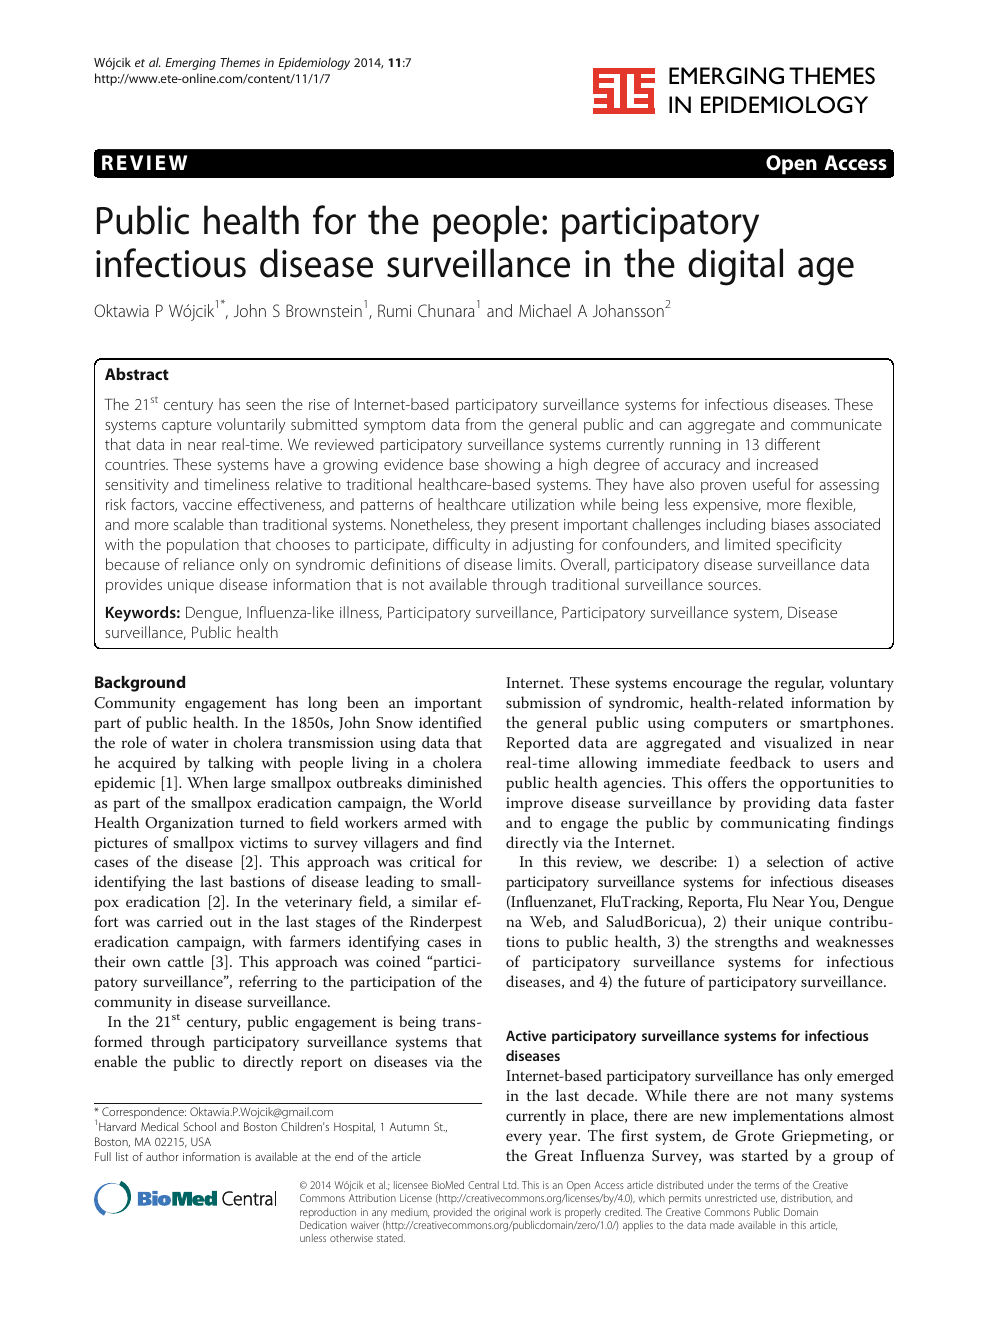 Public health for the people: participatory infectious disease